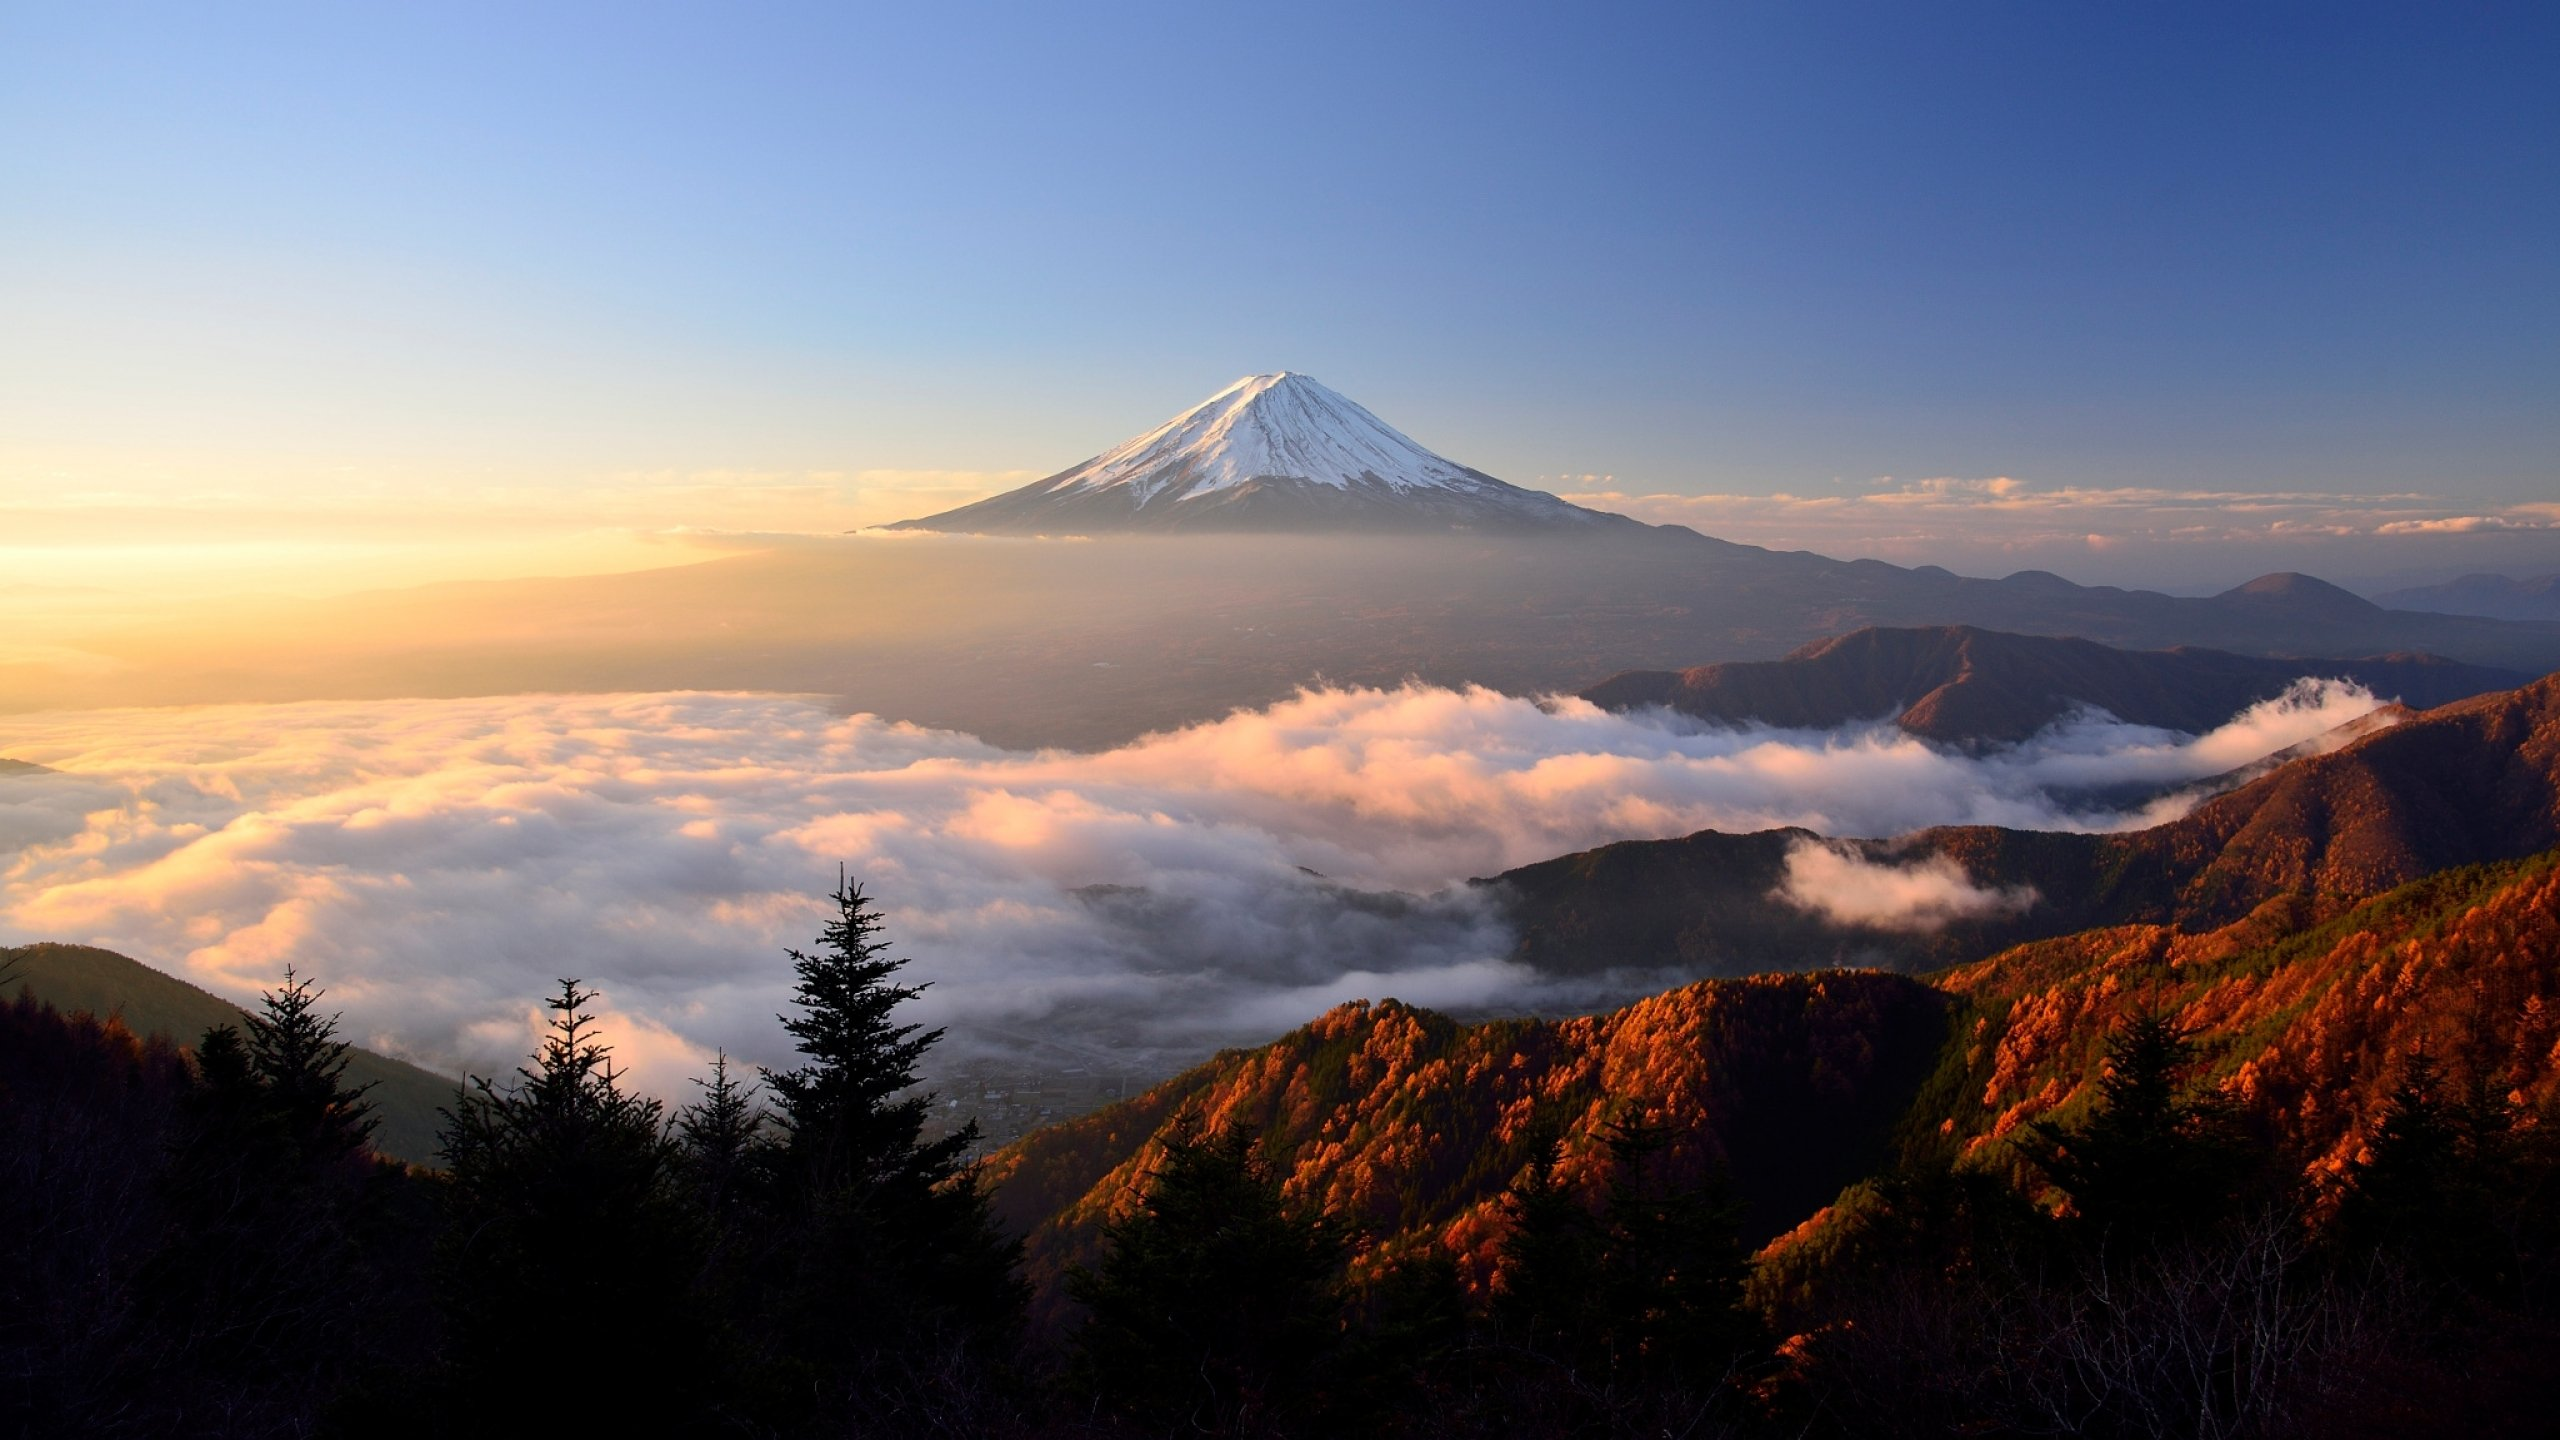 Mount Fuji [2560x1440] wallpapers 2560x1440